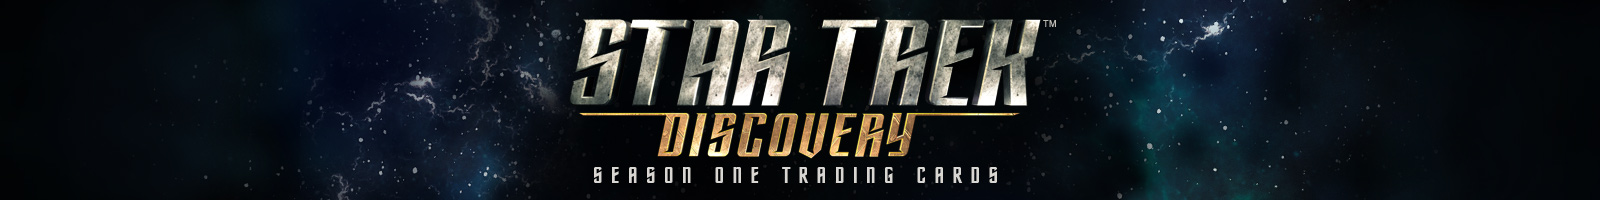 Star Trek Discovery Season One trading cards